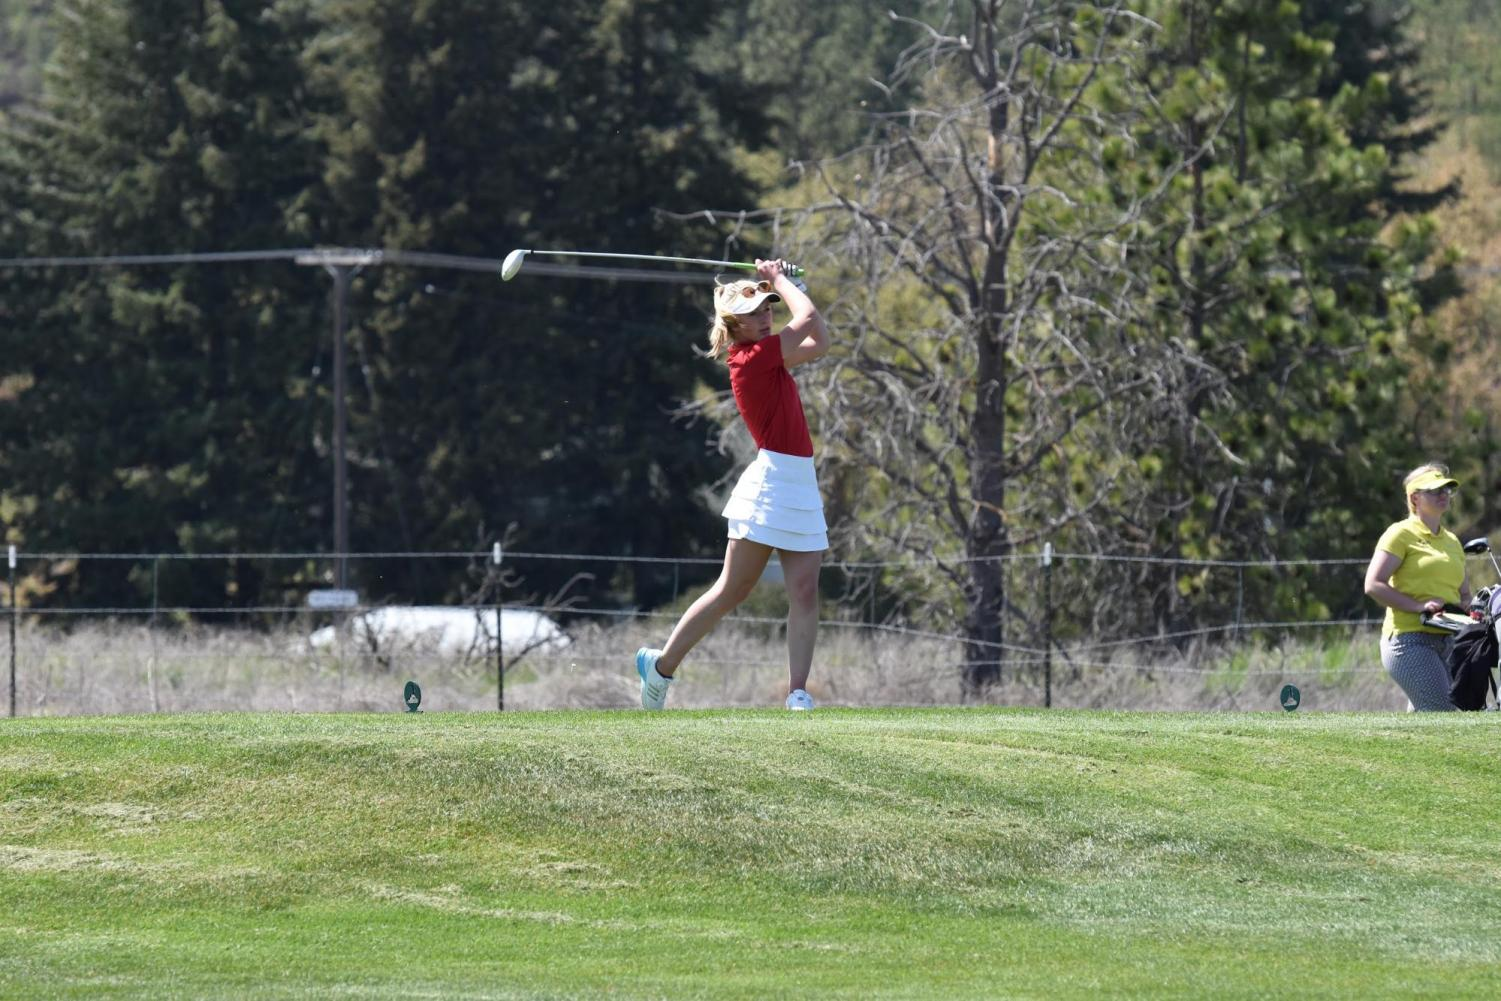 Sophomore+Annaby+Kanning+tees+off+on+the+7th+hole.